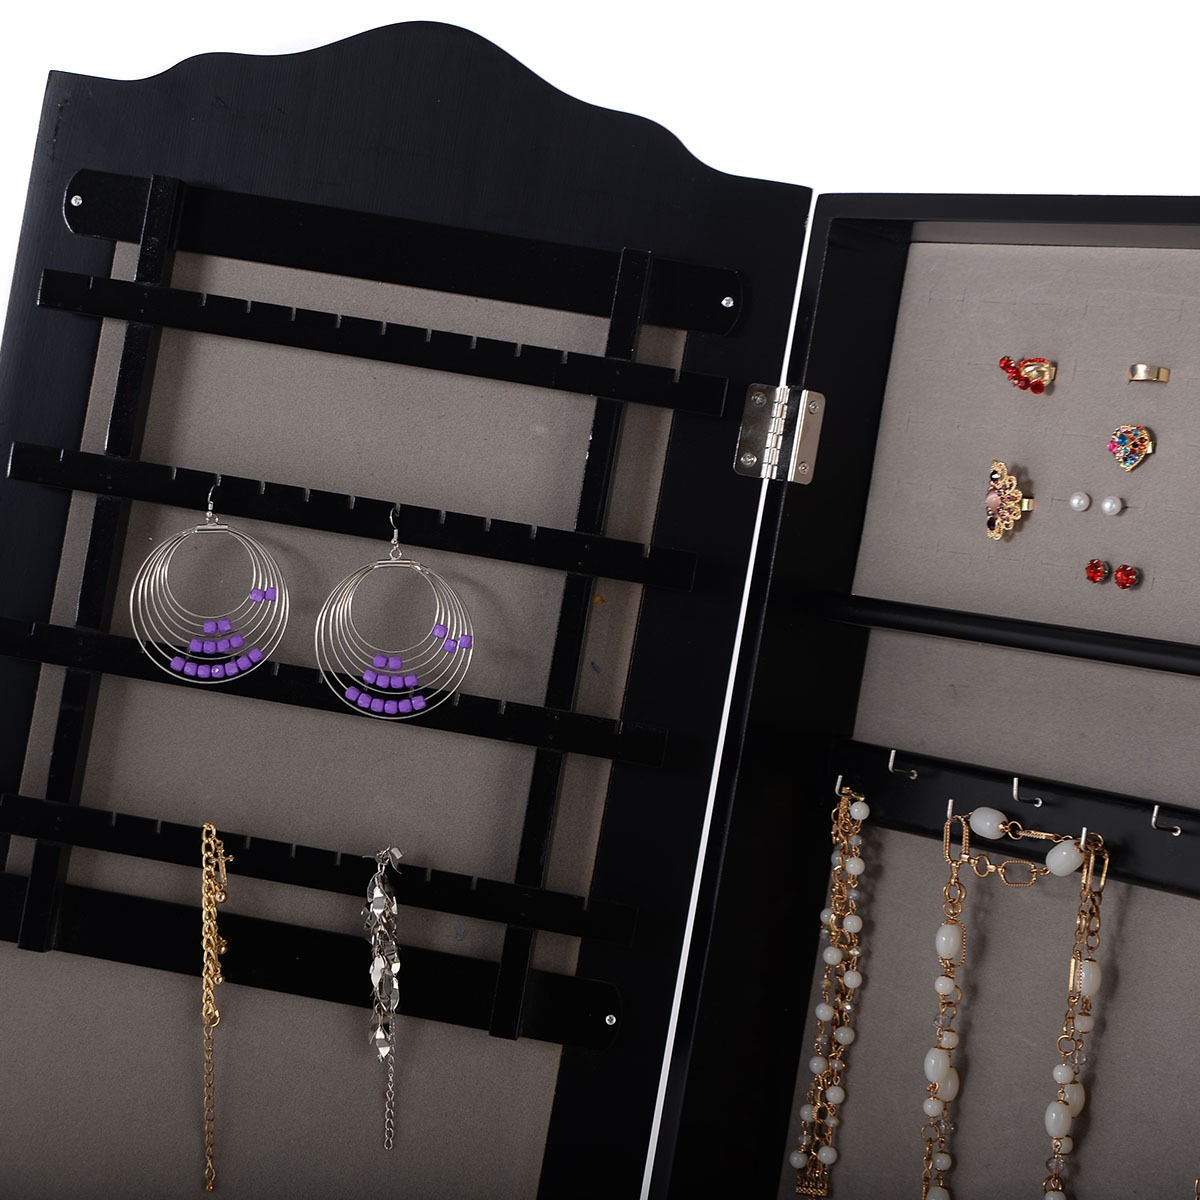 lockable mirrored jewelry cabinet armoire mirror organizer storage box stand us ebay. Black Bedroom Furniture Sets. Home Design Ideas